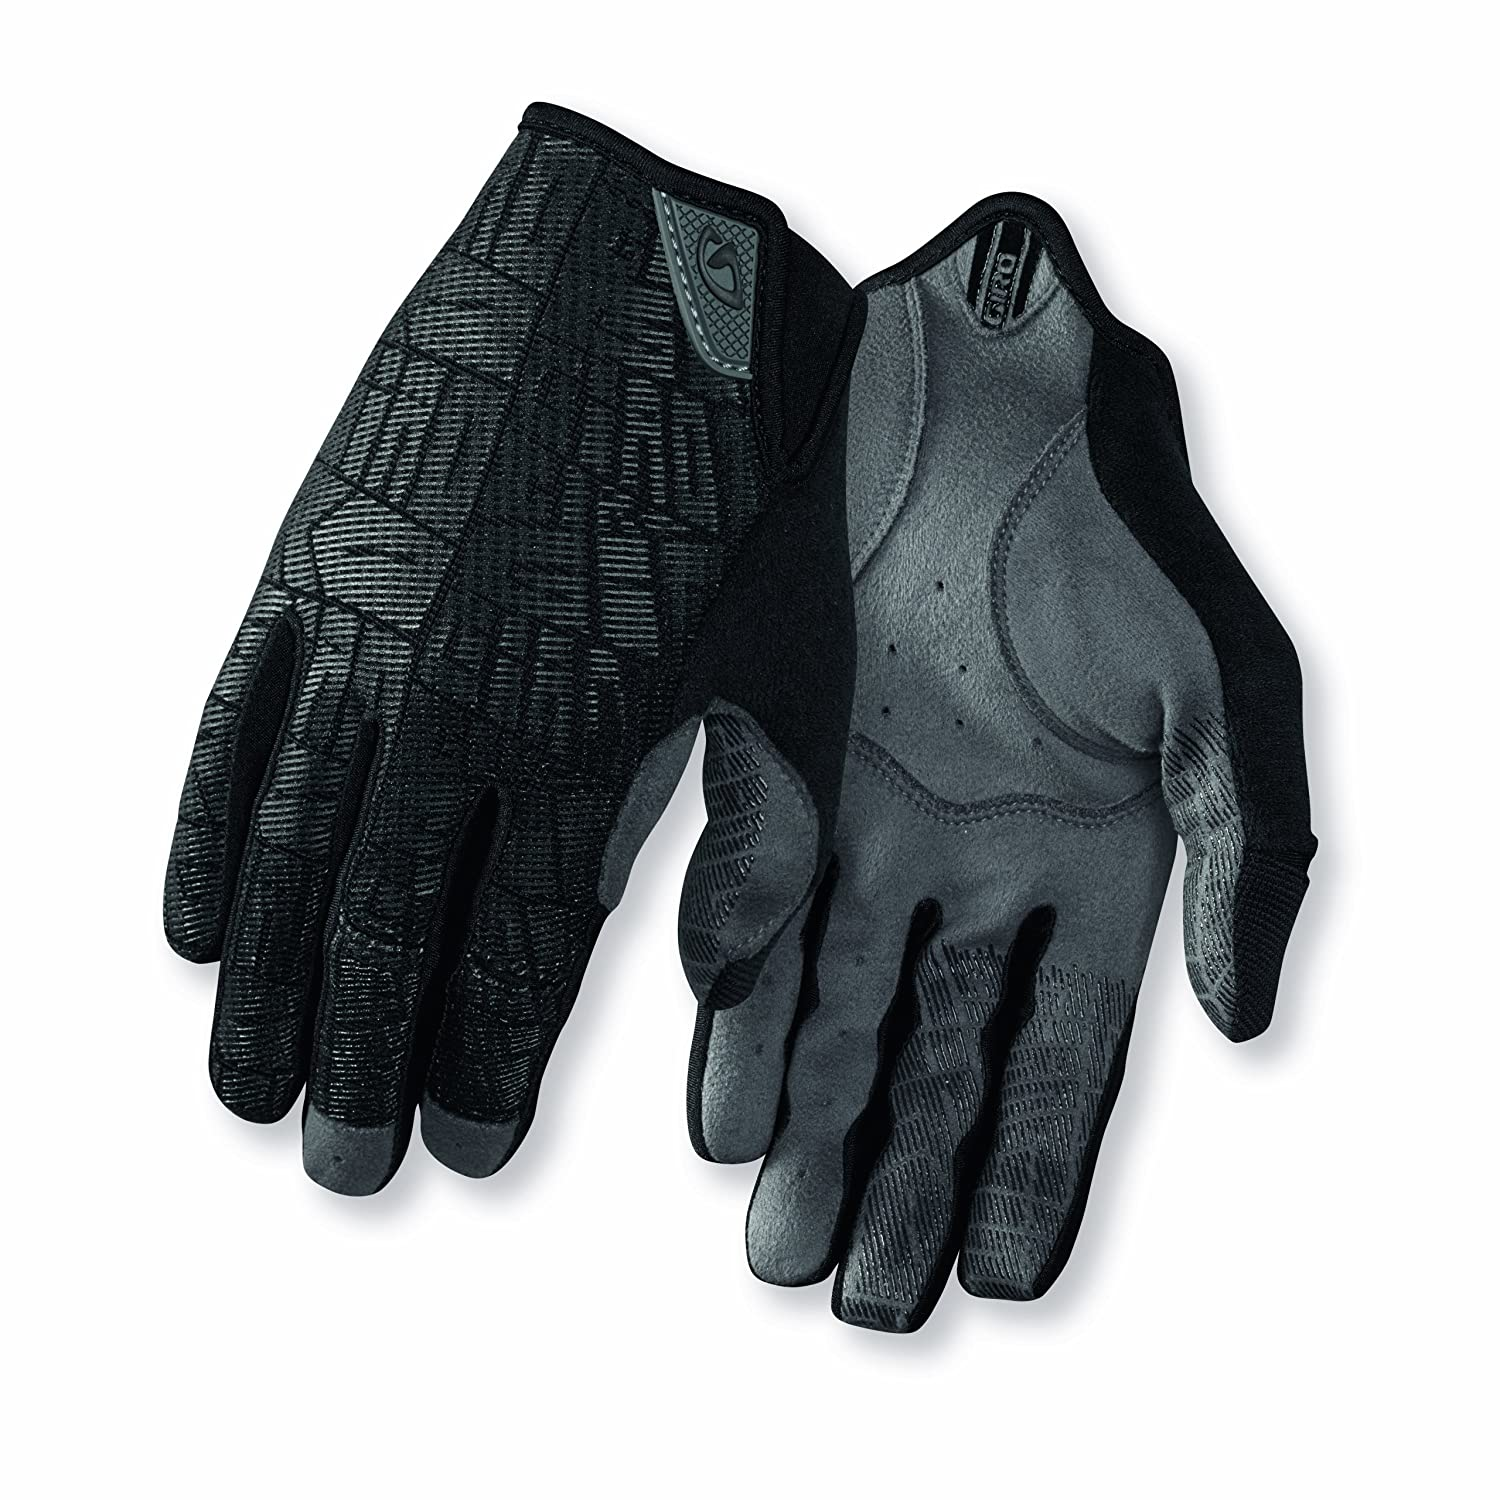 Gifts for mountain biker friends - Gloves // The PumpUp Blog